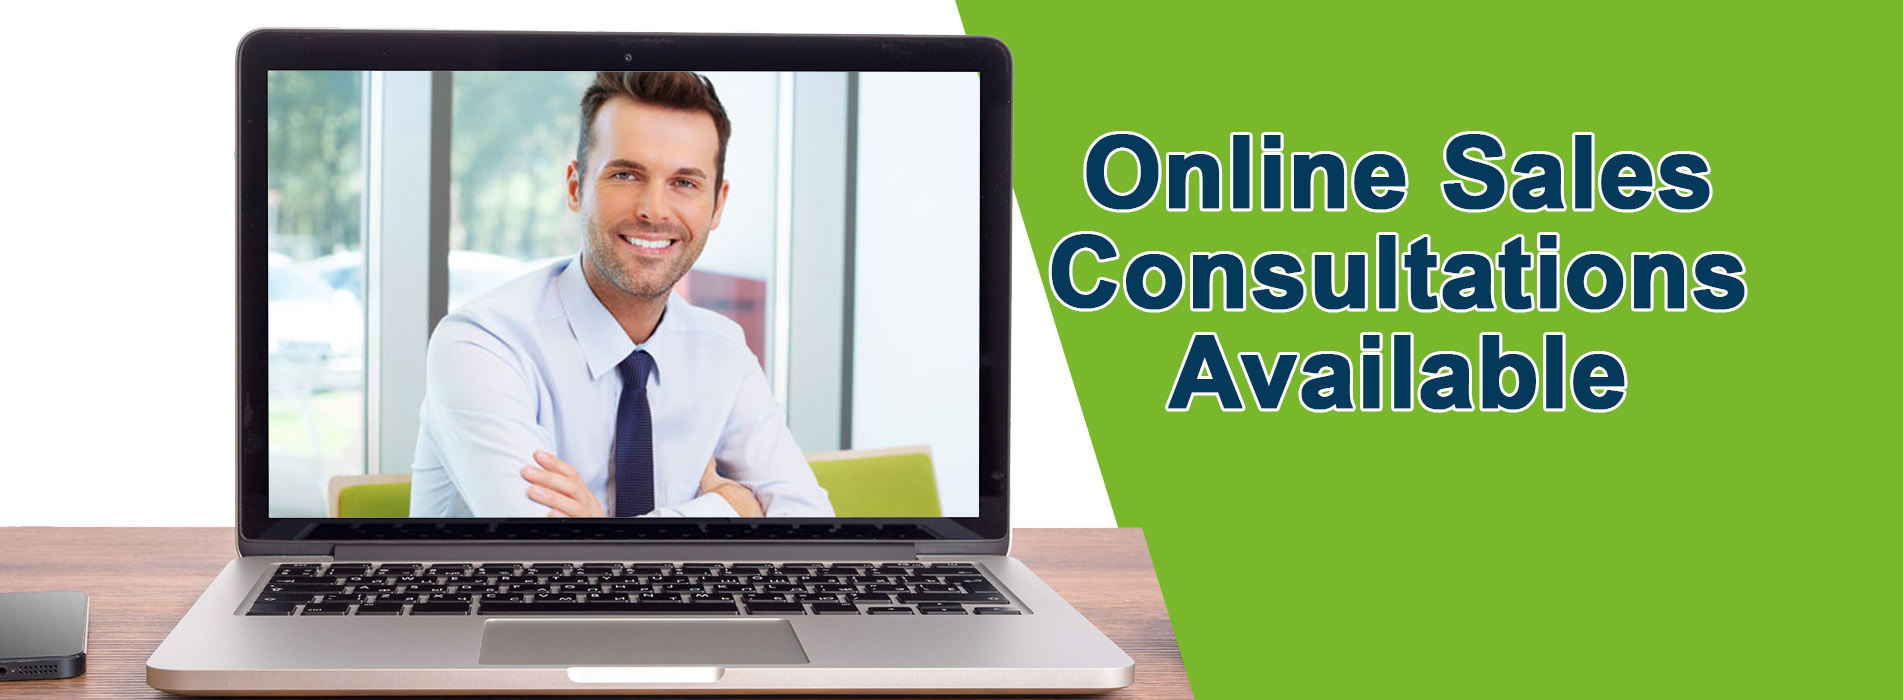 online-sales-consultations-new-home